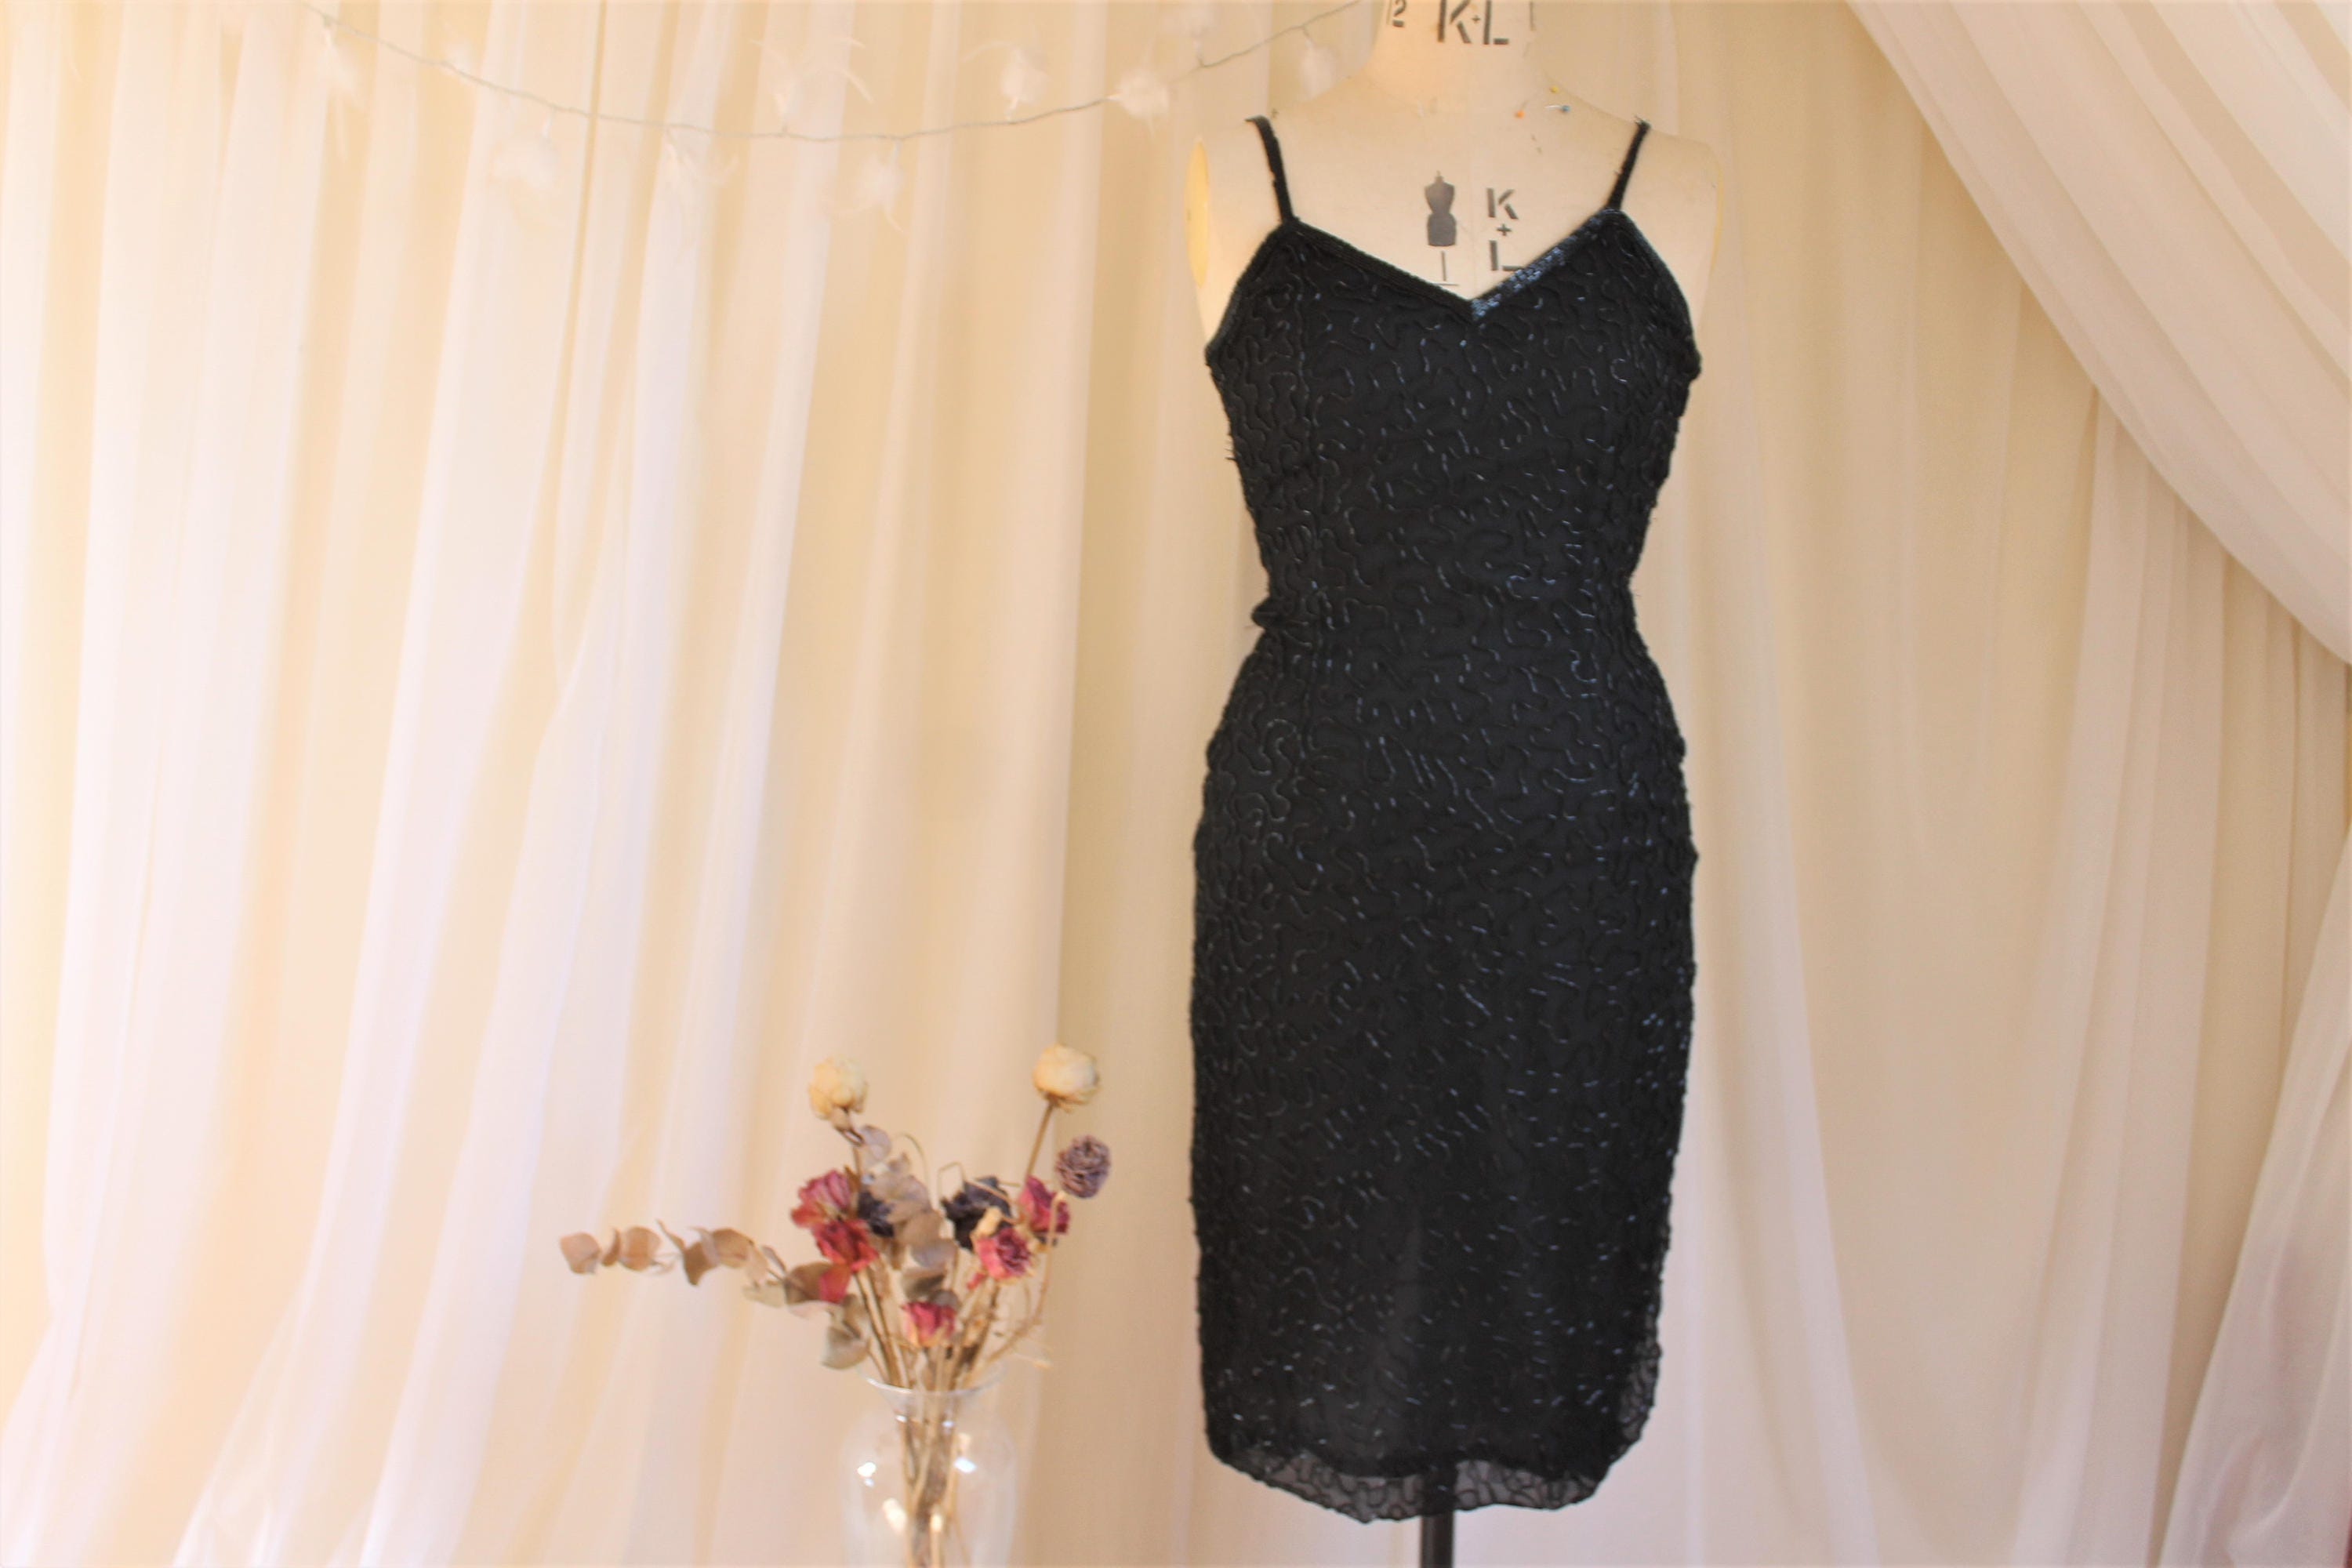 Vintage Designer Black Beaded Dress 1980s does 1920s Flapper Dress (As Is). Ronald Joyce After Six Collection. Cami wiggle dress.UK 8 US 4